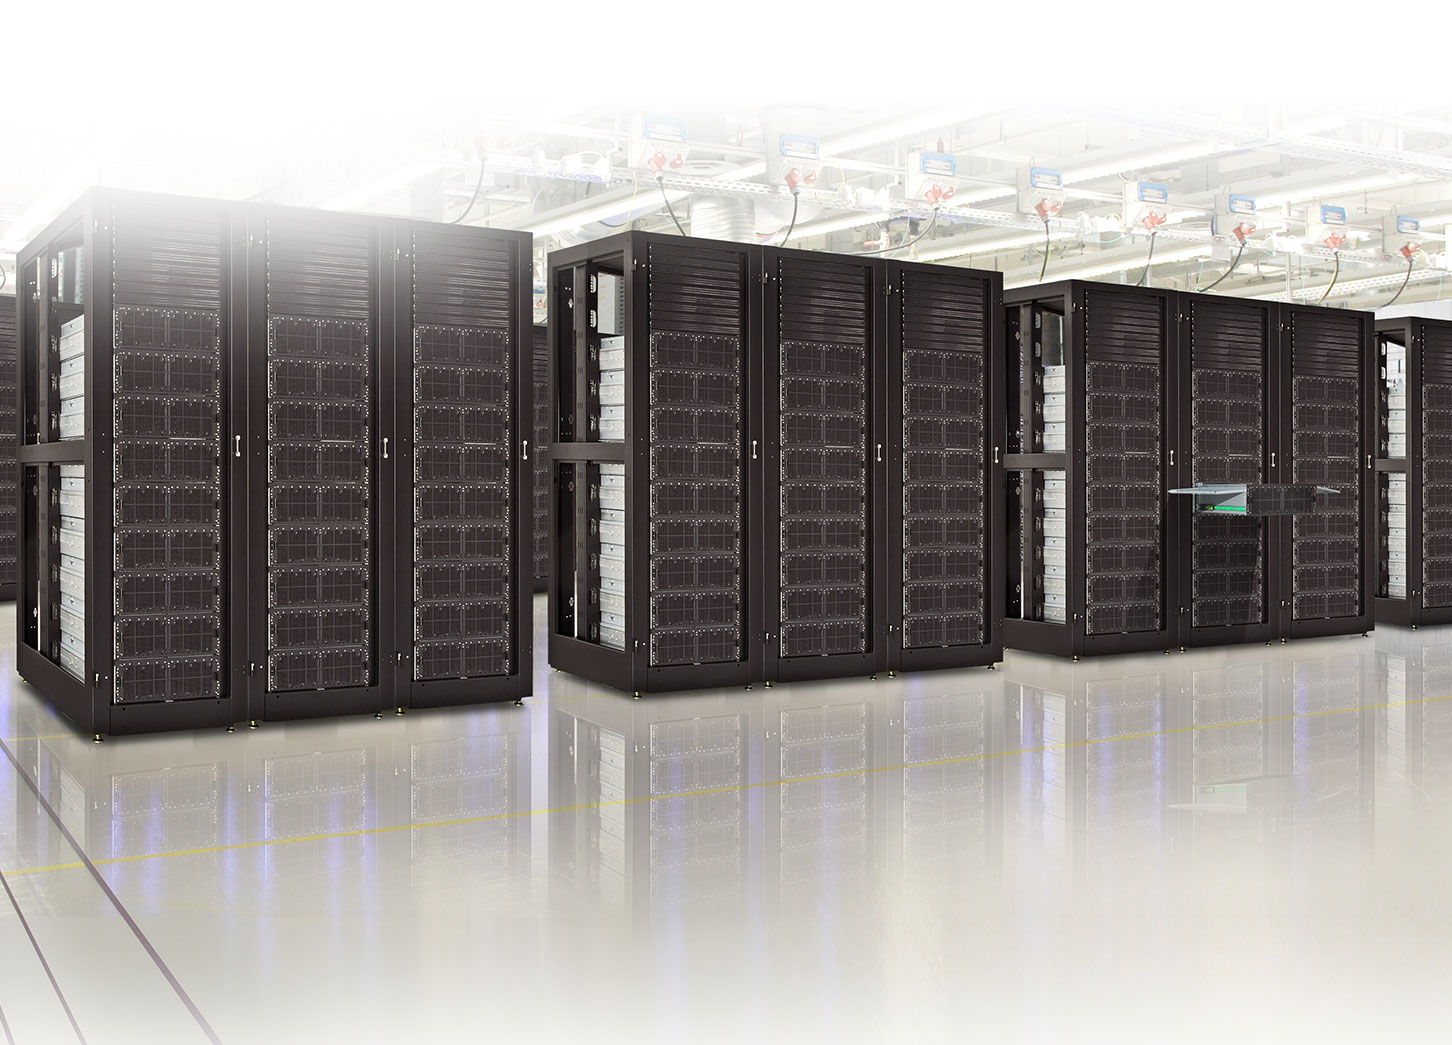 Hundreds of storage servers in production at Sanmina